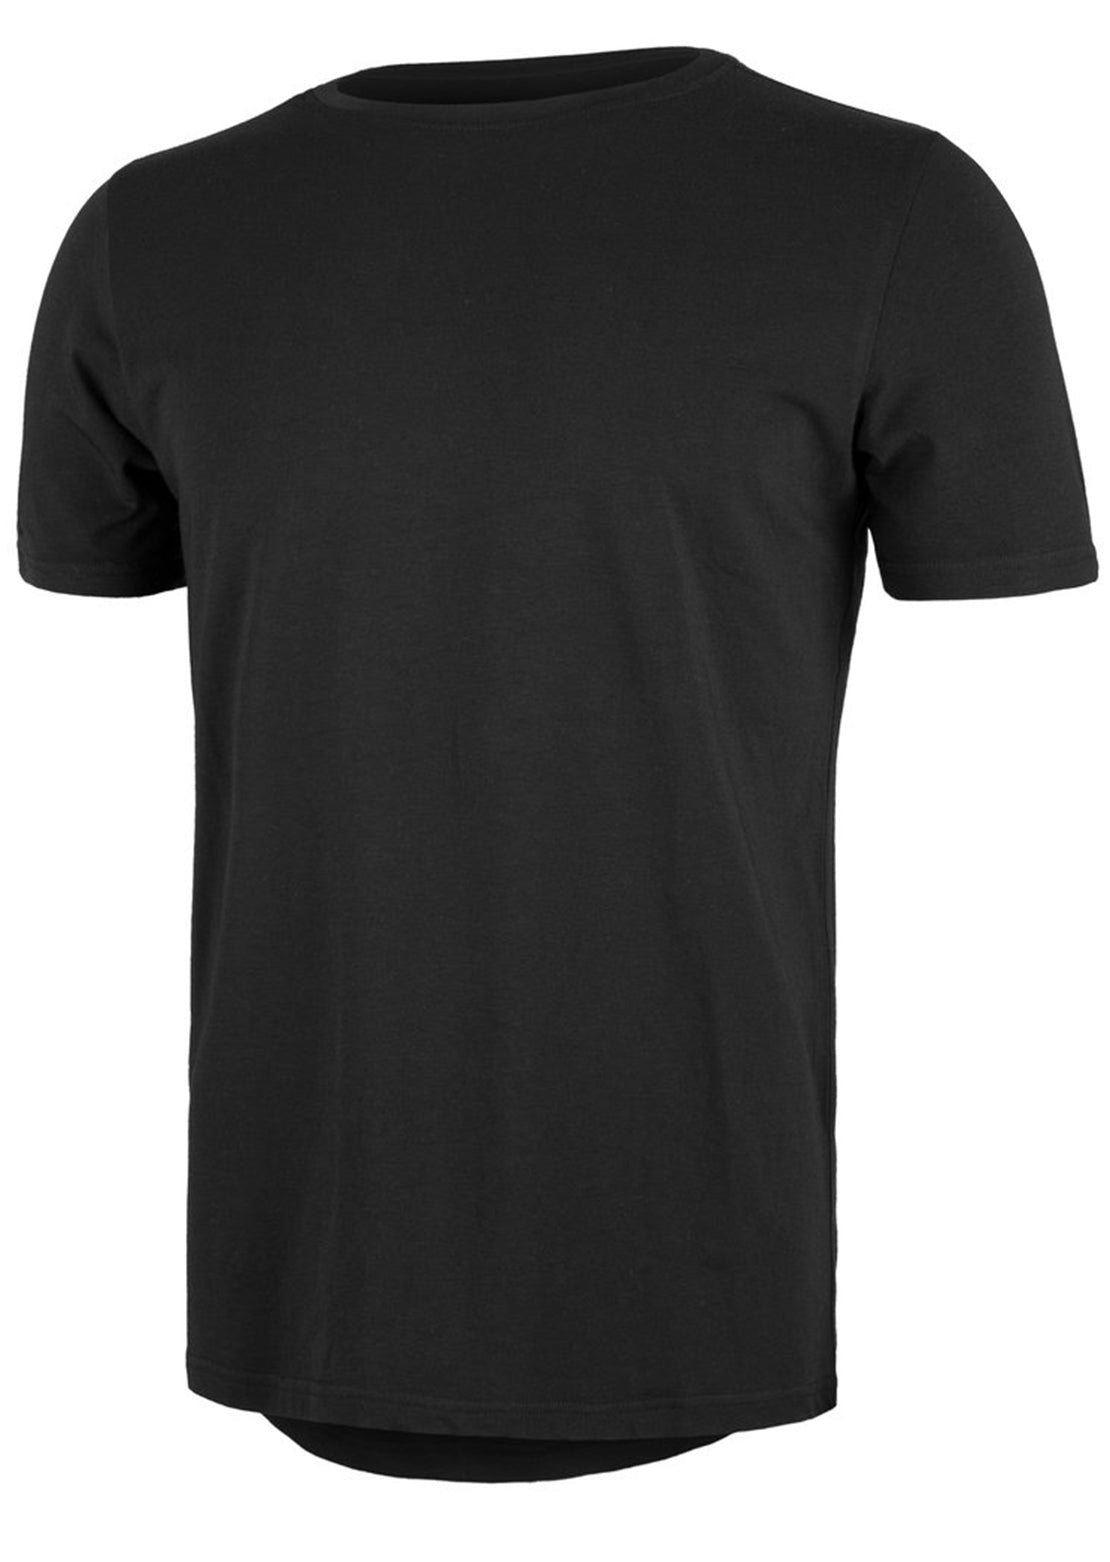 BN3TH Men's Short Sleeve Shirt - Front